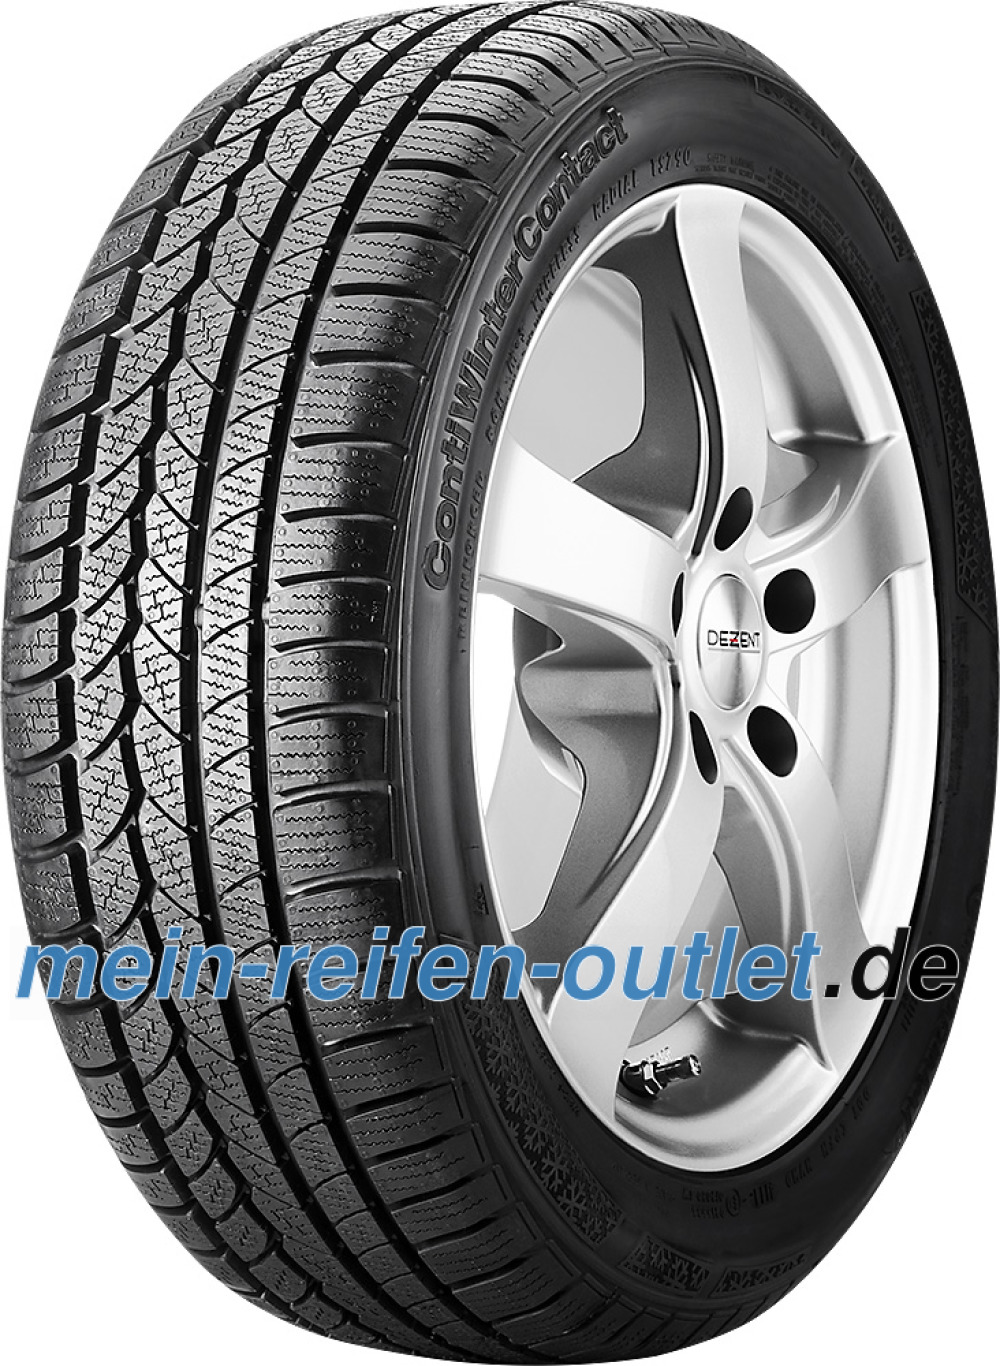 Continental WinterContact TS 790 ( 245/55 R17 102H *, mit Felgenrippe )